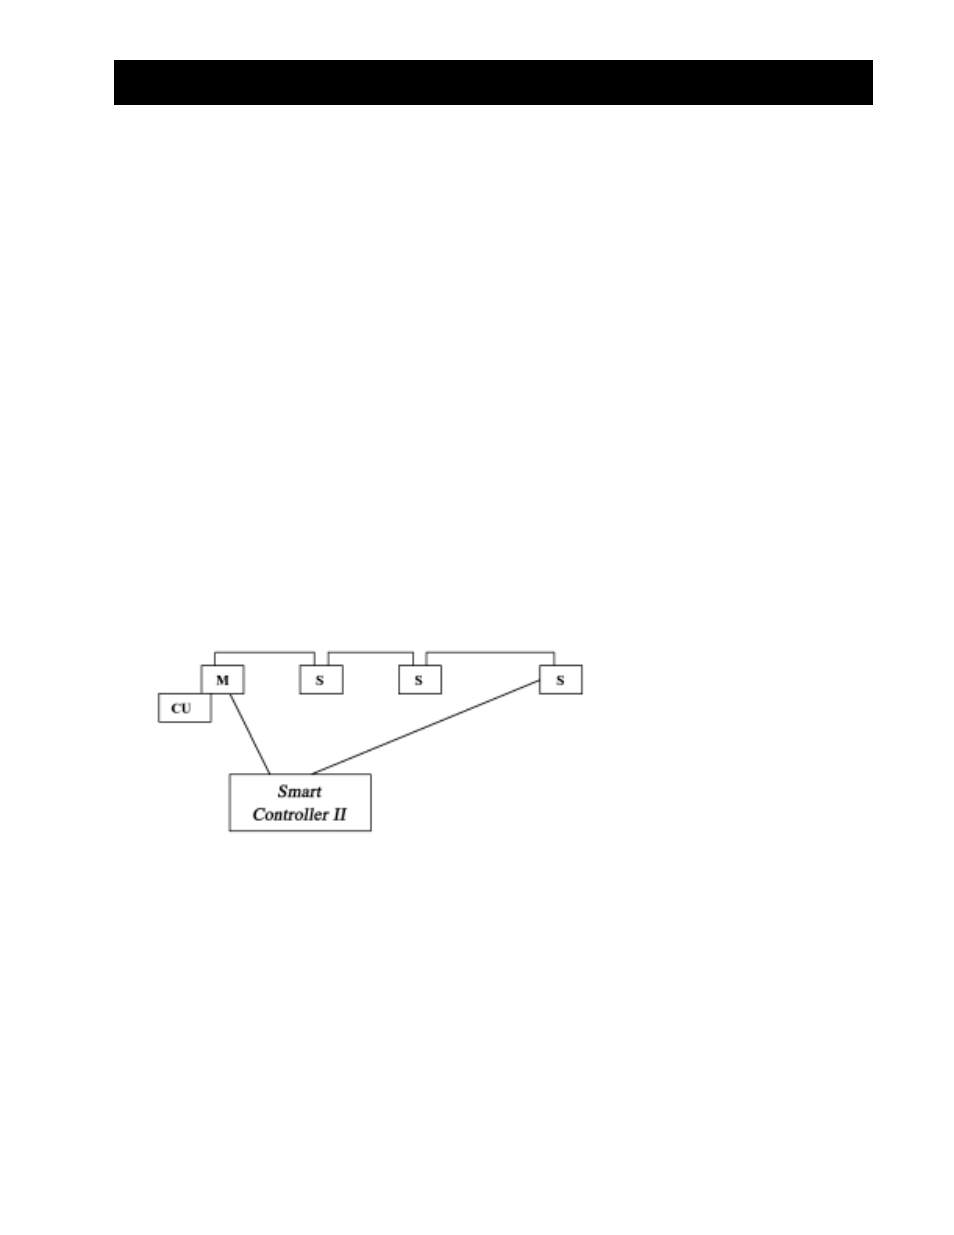 medium resolution of wiring heatcraft refrigeration products beacon ii smart controller h im 80c user manual page 5 24